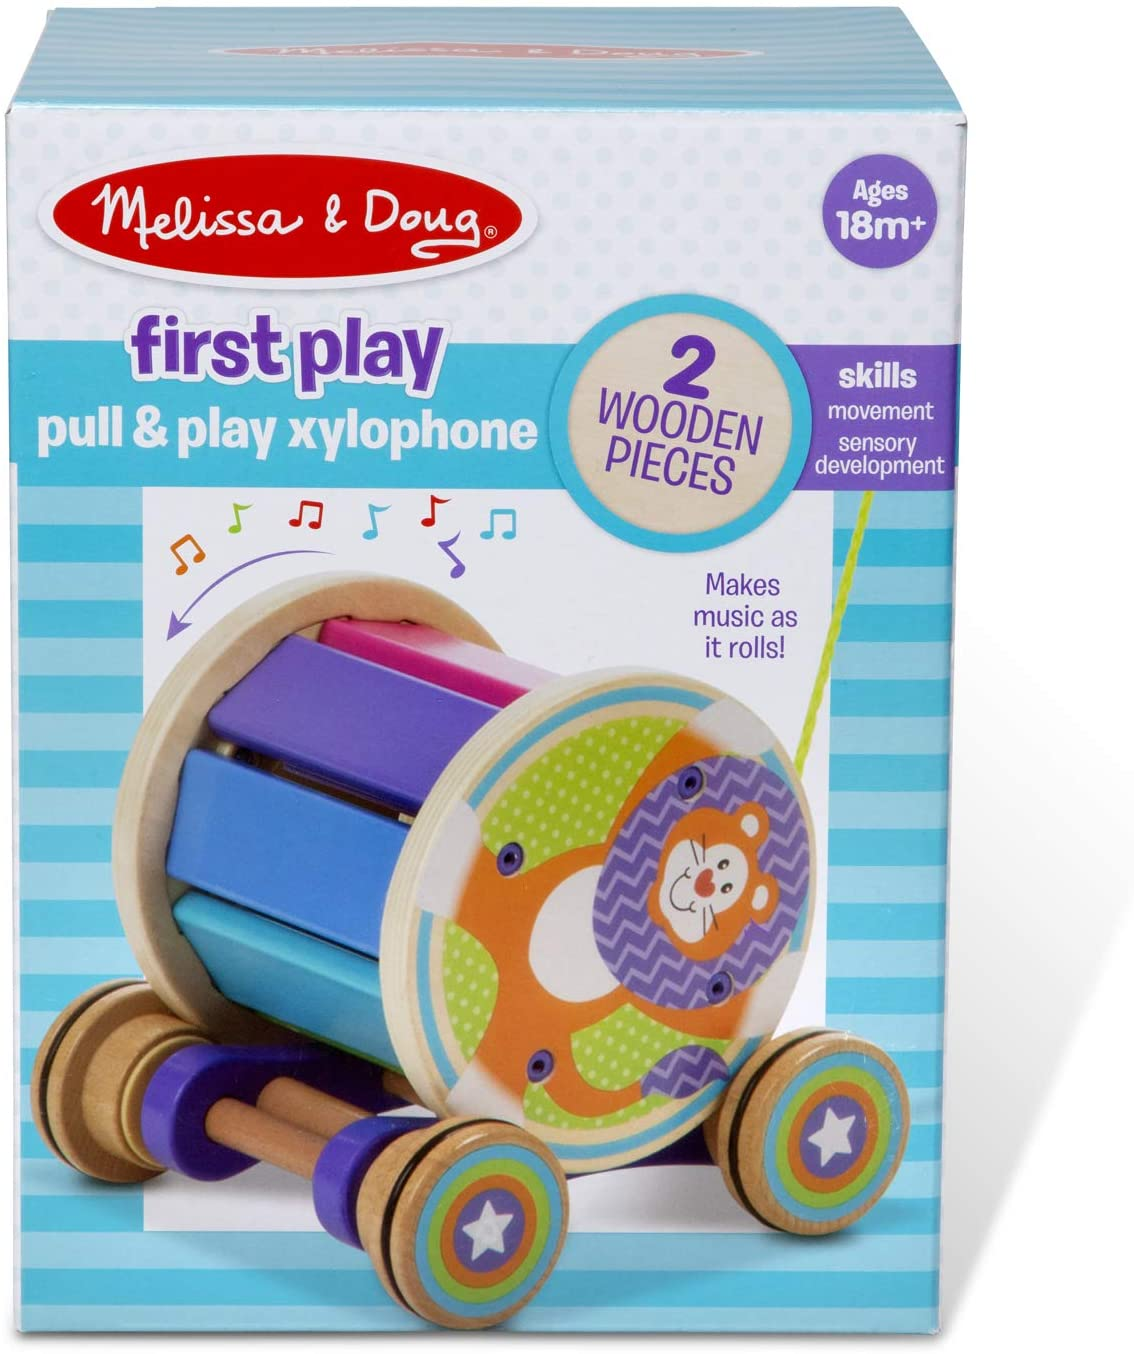 PULL & PLAY XYLOPHONE